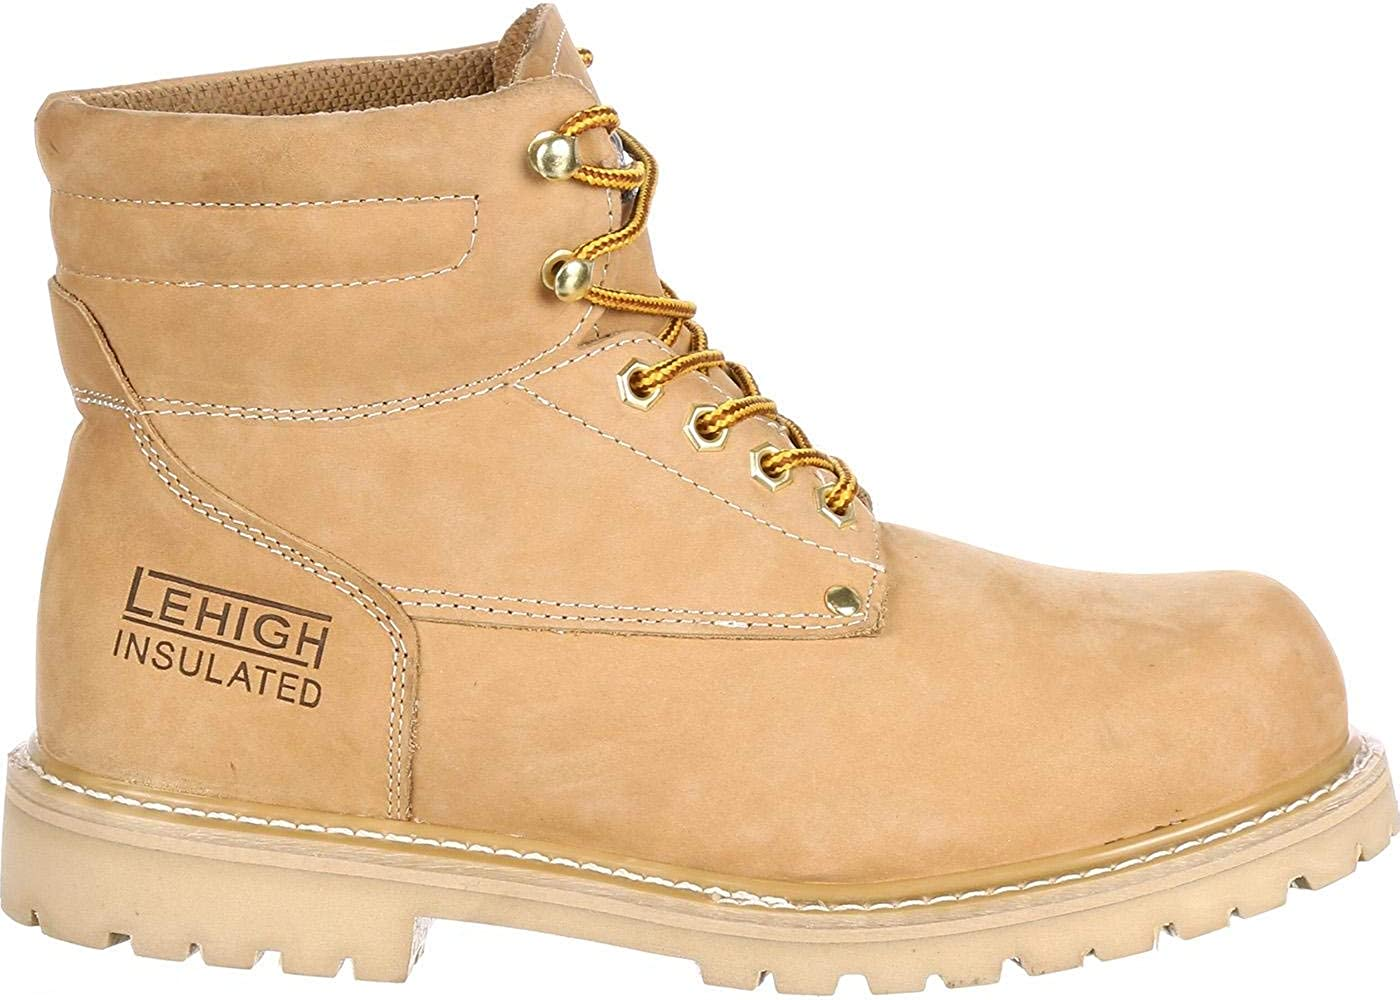 Lehigh Safety Shoes Steel Toe 200G Insulated Work Boot